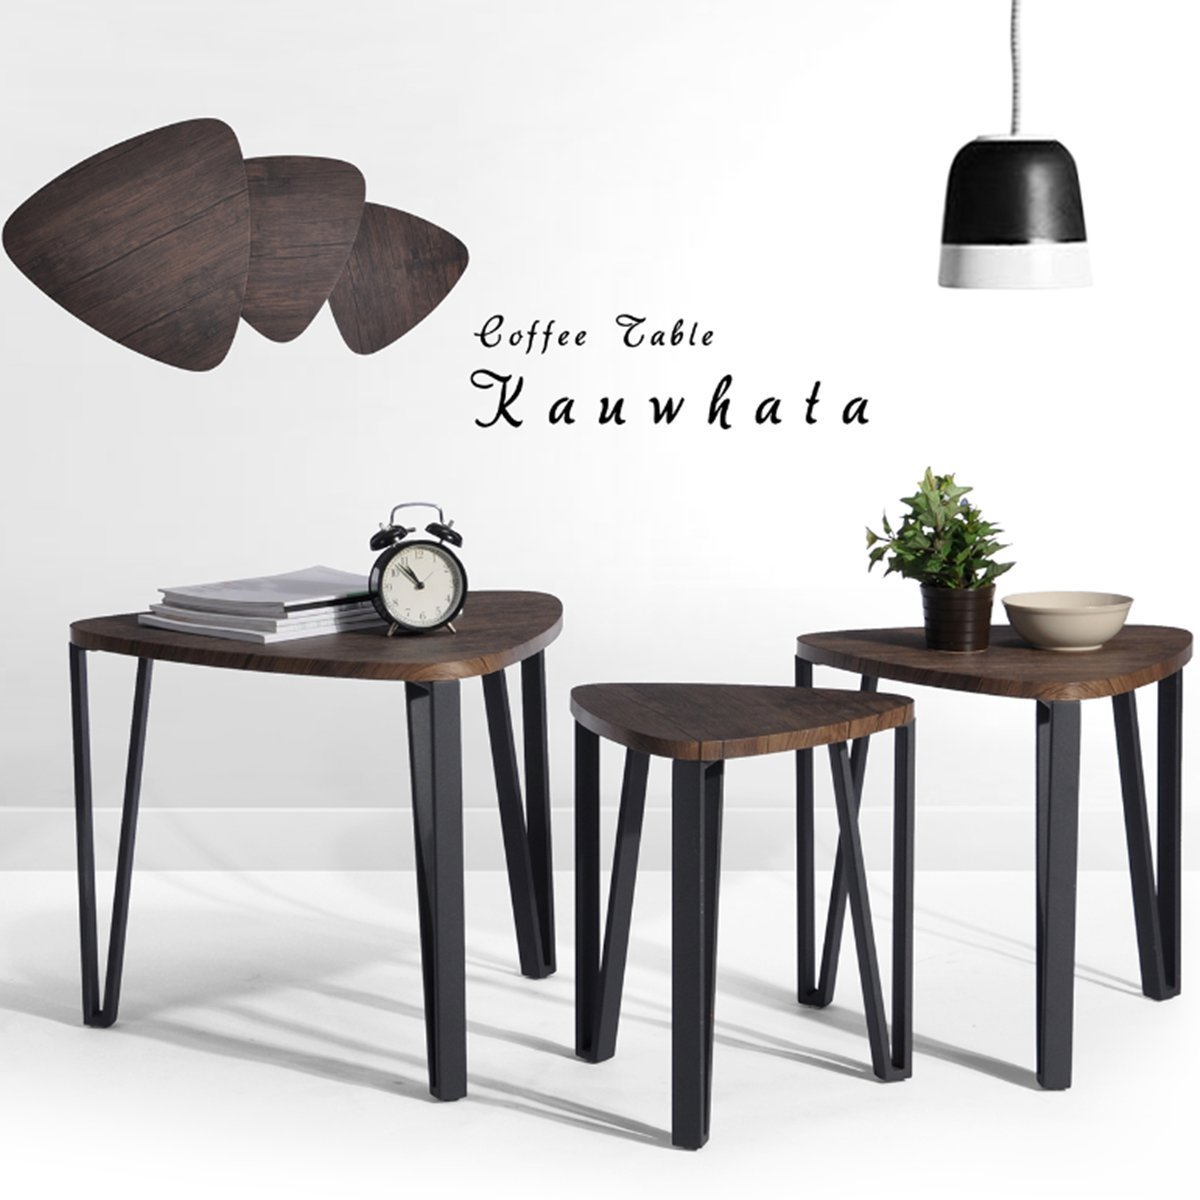 Coffee Table Set of 3 End Side Table Nesting Corner Table Stacking Tea Table Brown Modern Leisure Wood Table With Metal Tube For Living Room Waiting Room Balcony and Office